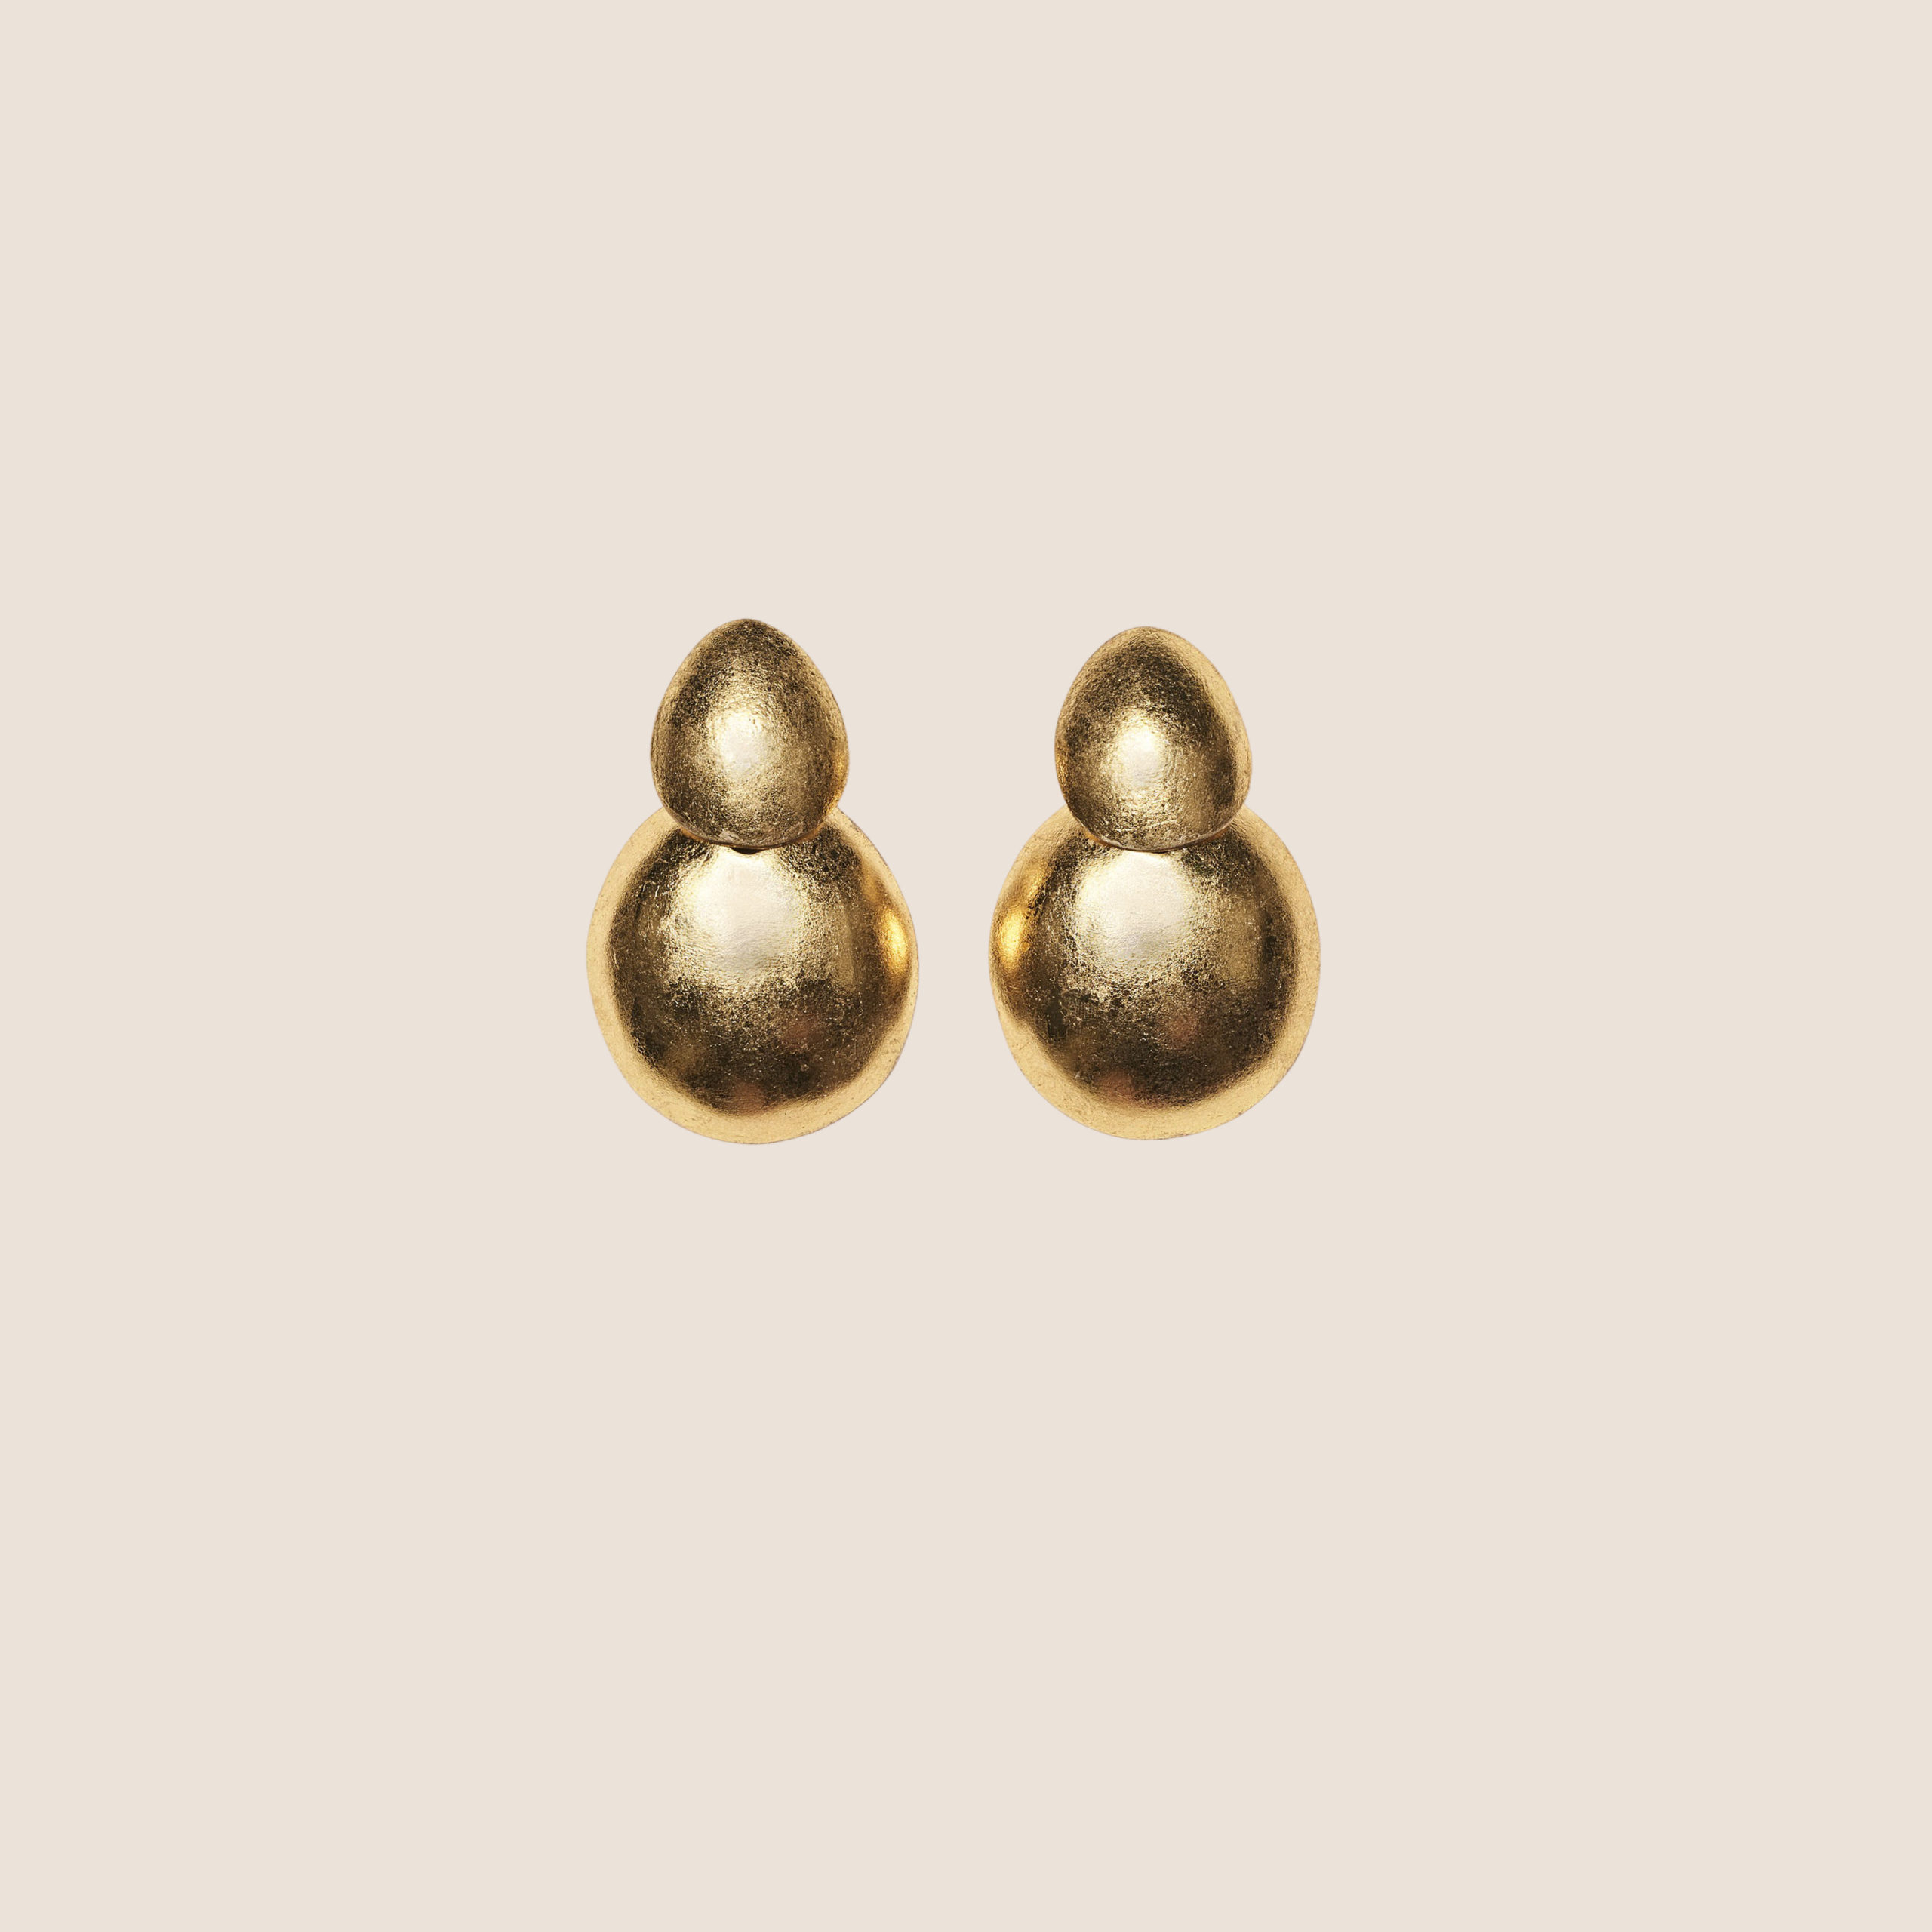 Quito Earclips